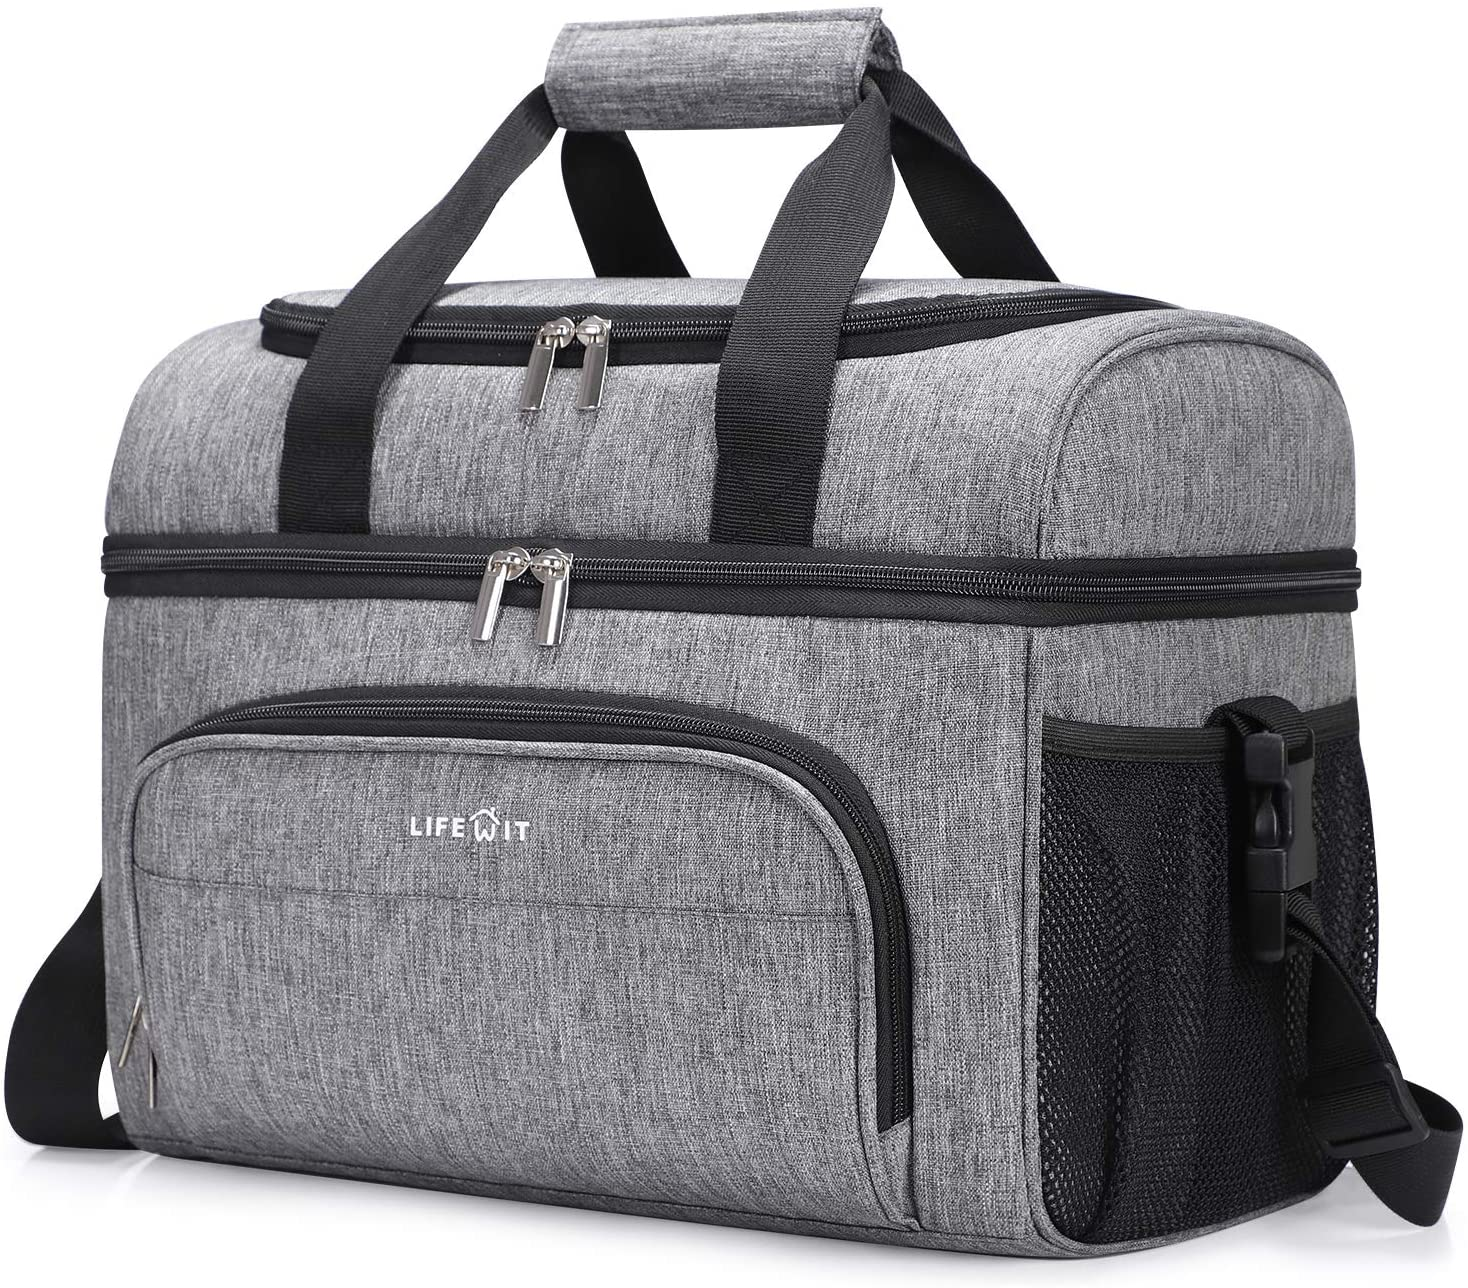 Lifewit Insulated & Leakproof Collapsible Cooler Bag